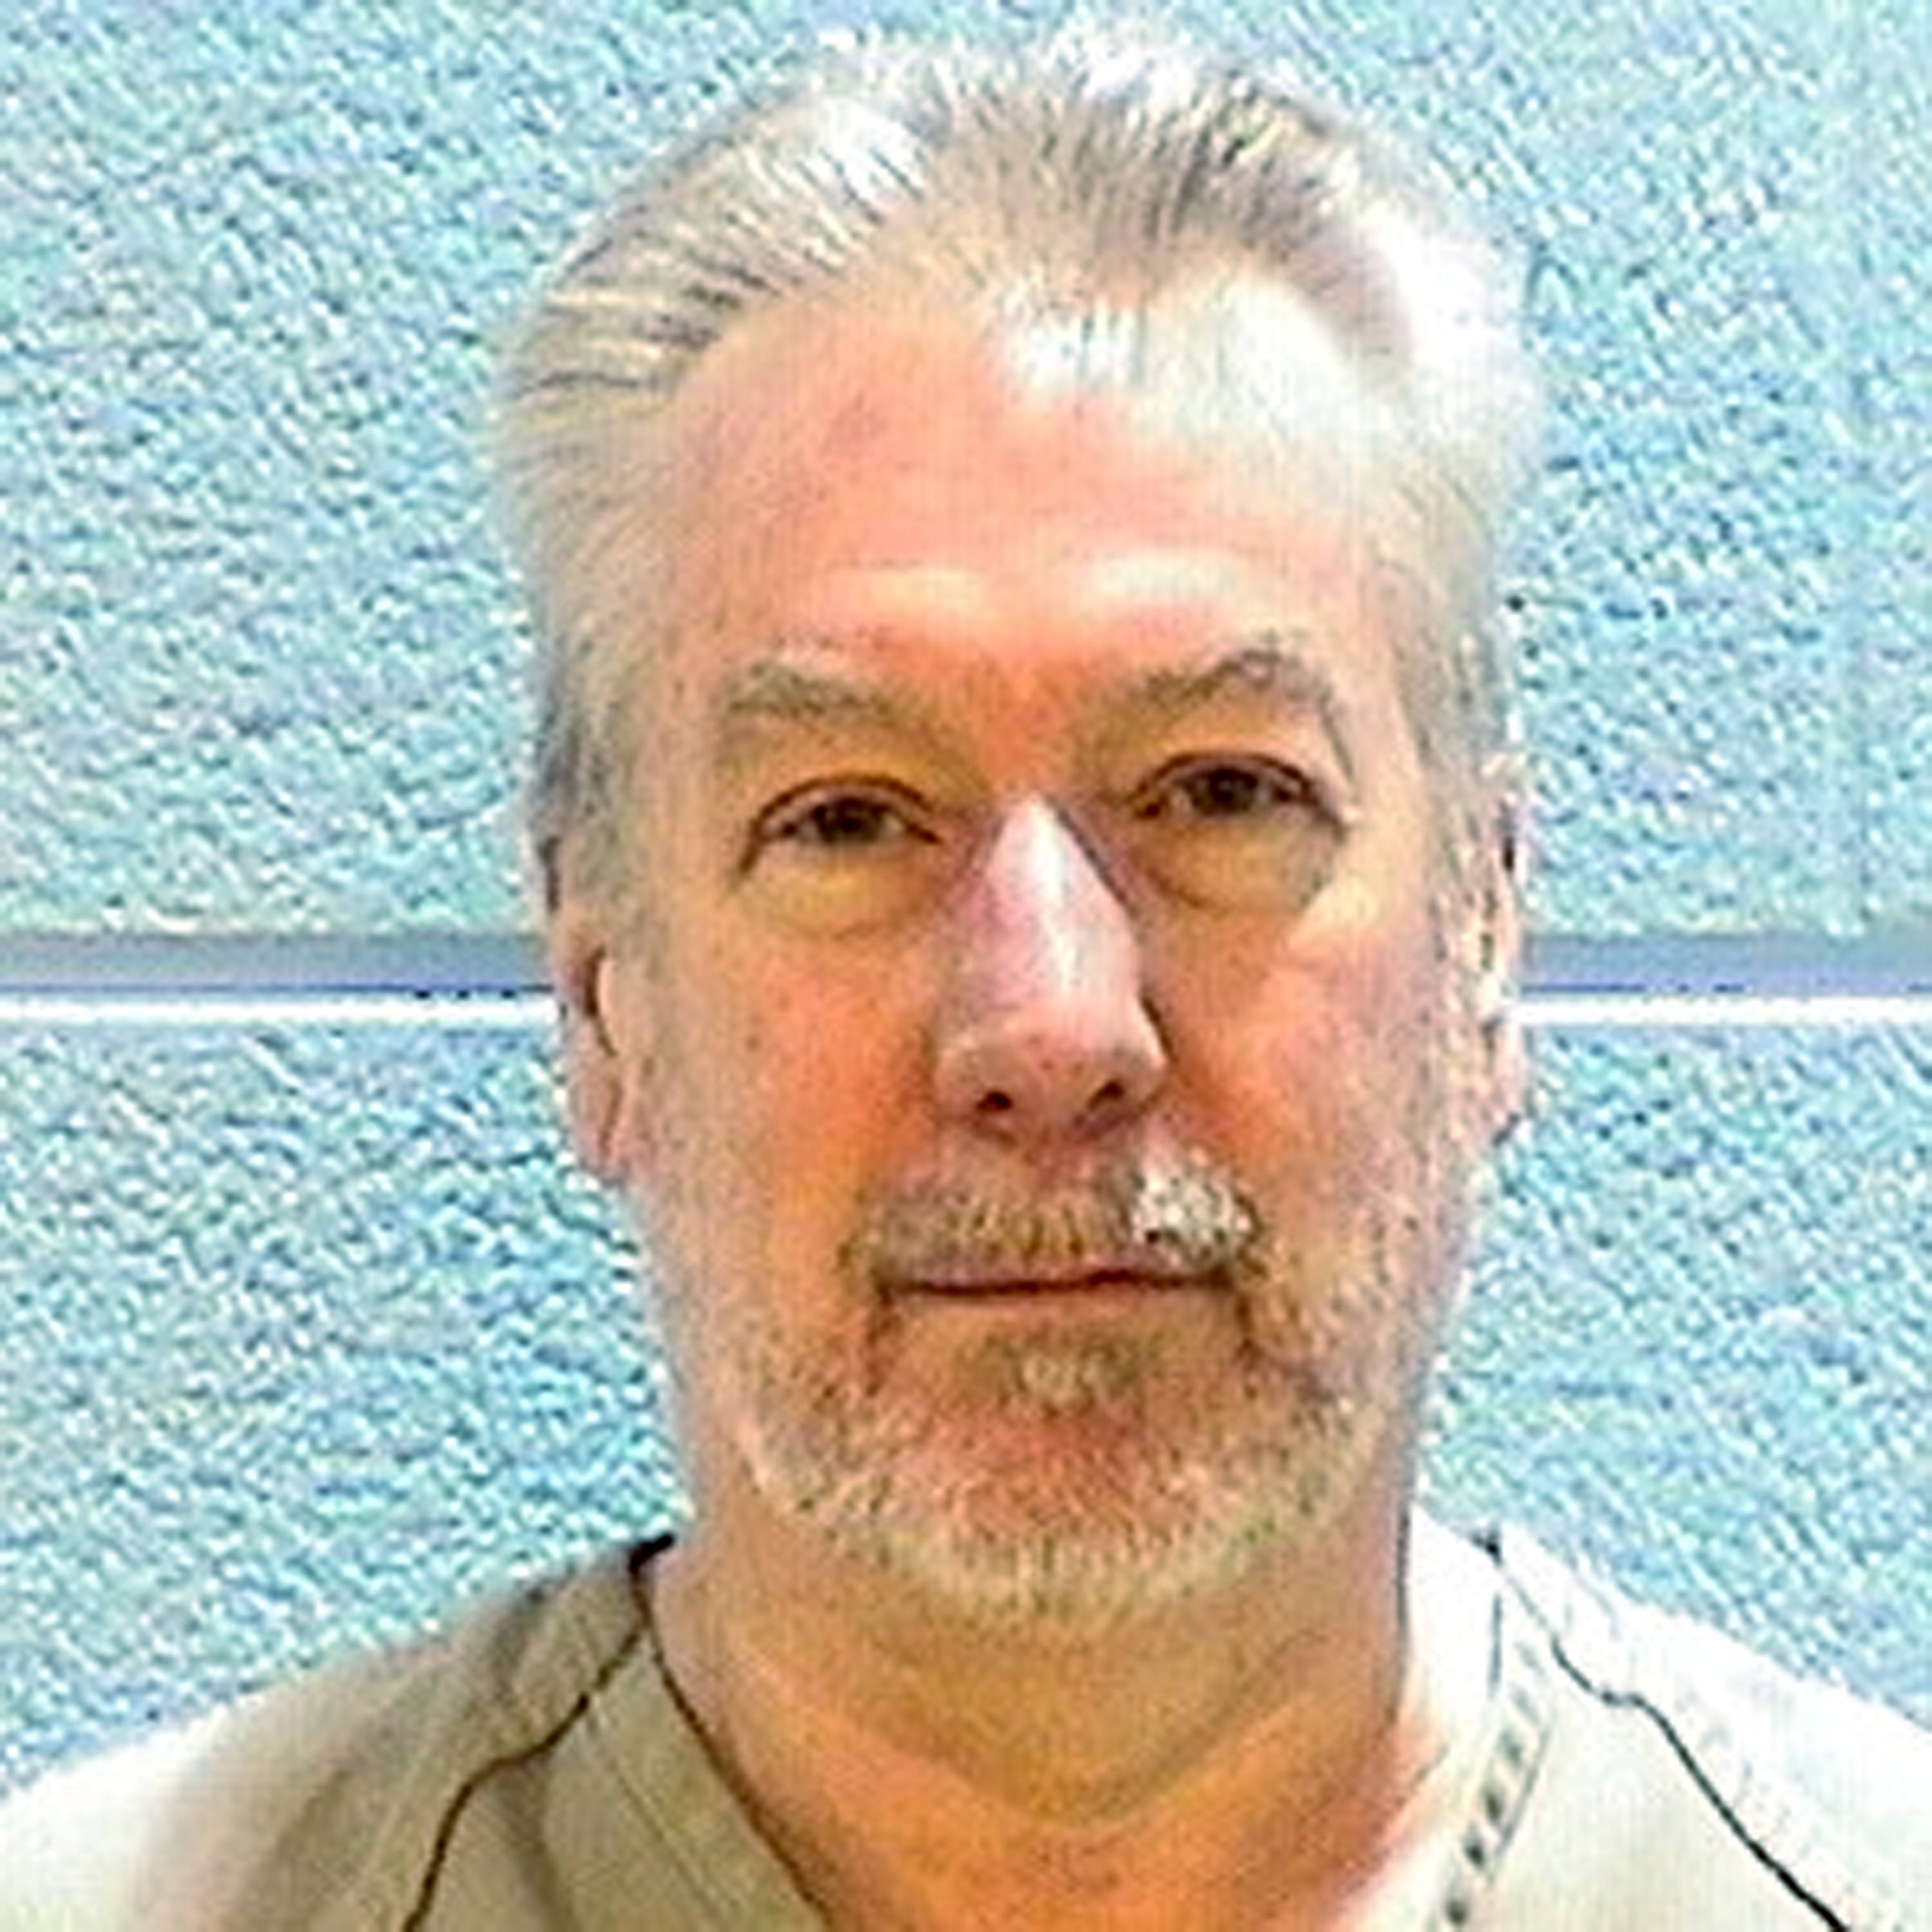 Drew Peterson charged with plotting to kill prosecutor